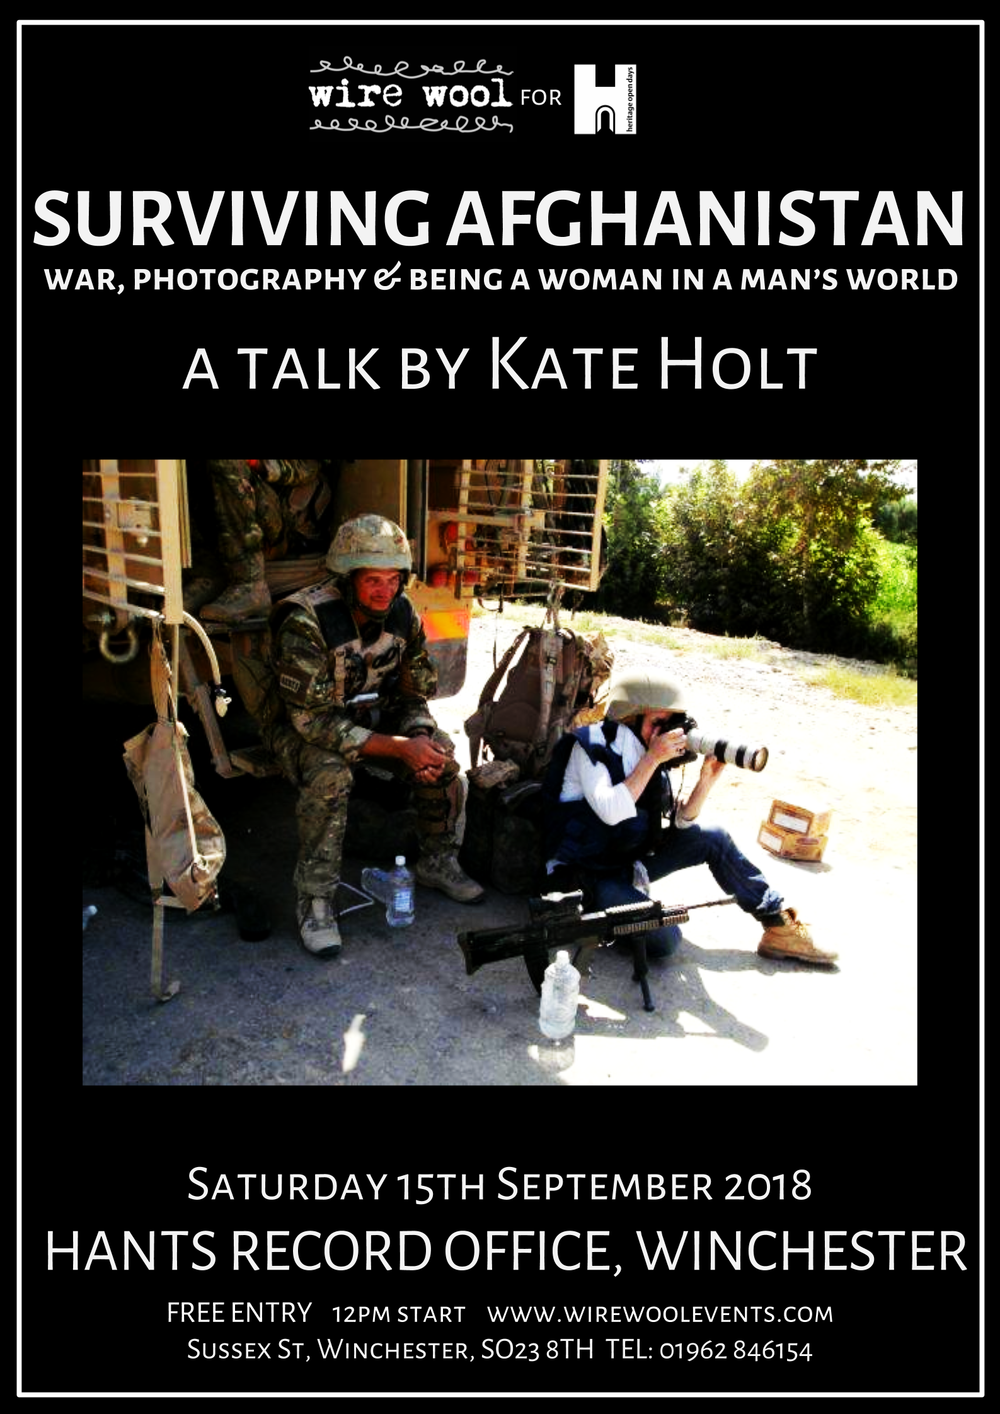 Kate Holt: Surviving Afghanistan  Saturday, September 15, 2018 12:00pm Hampshire Record Office